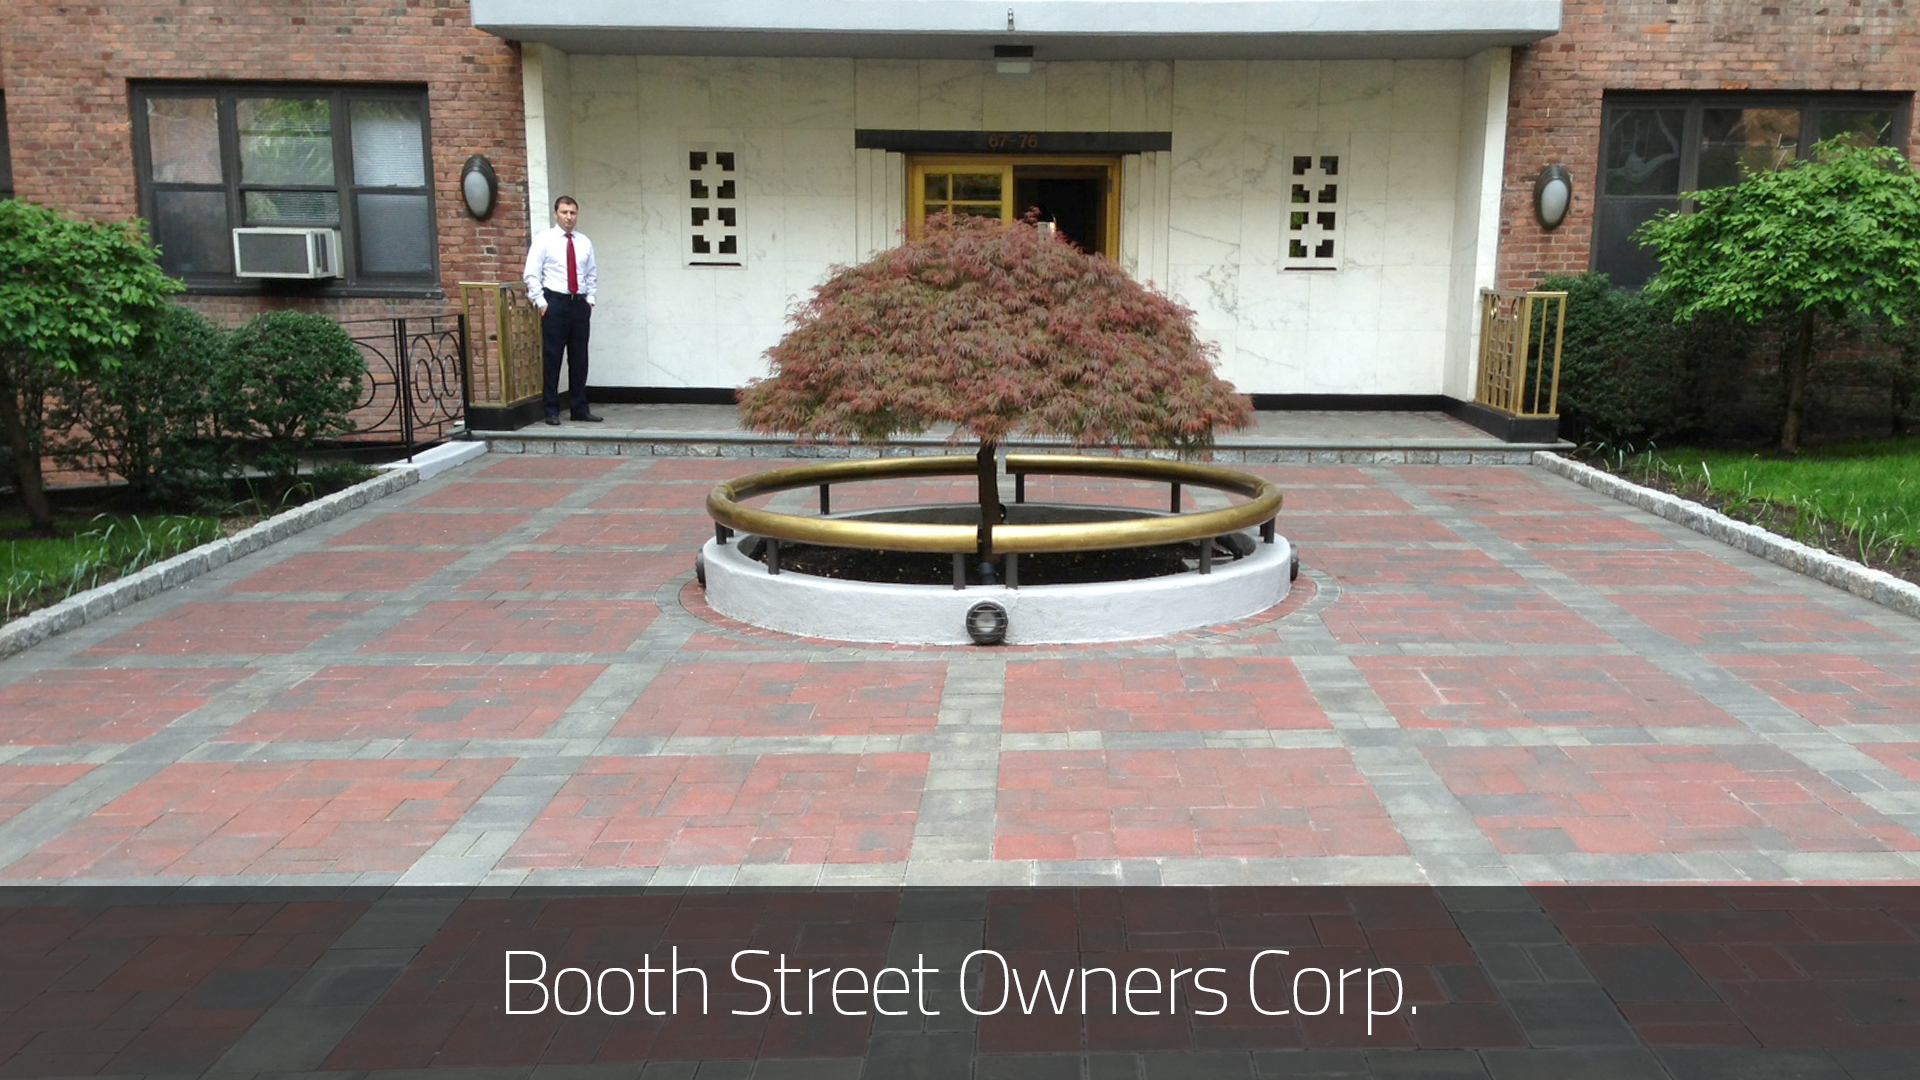 Booth street owners corp